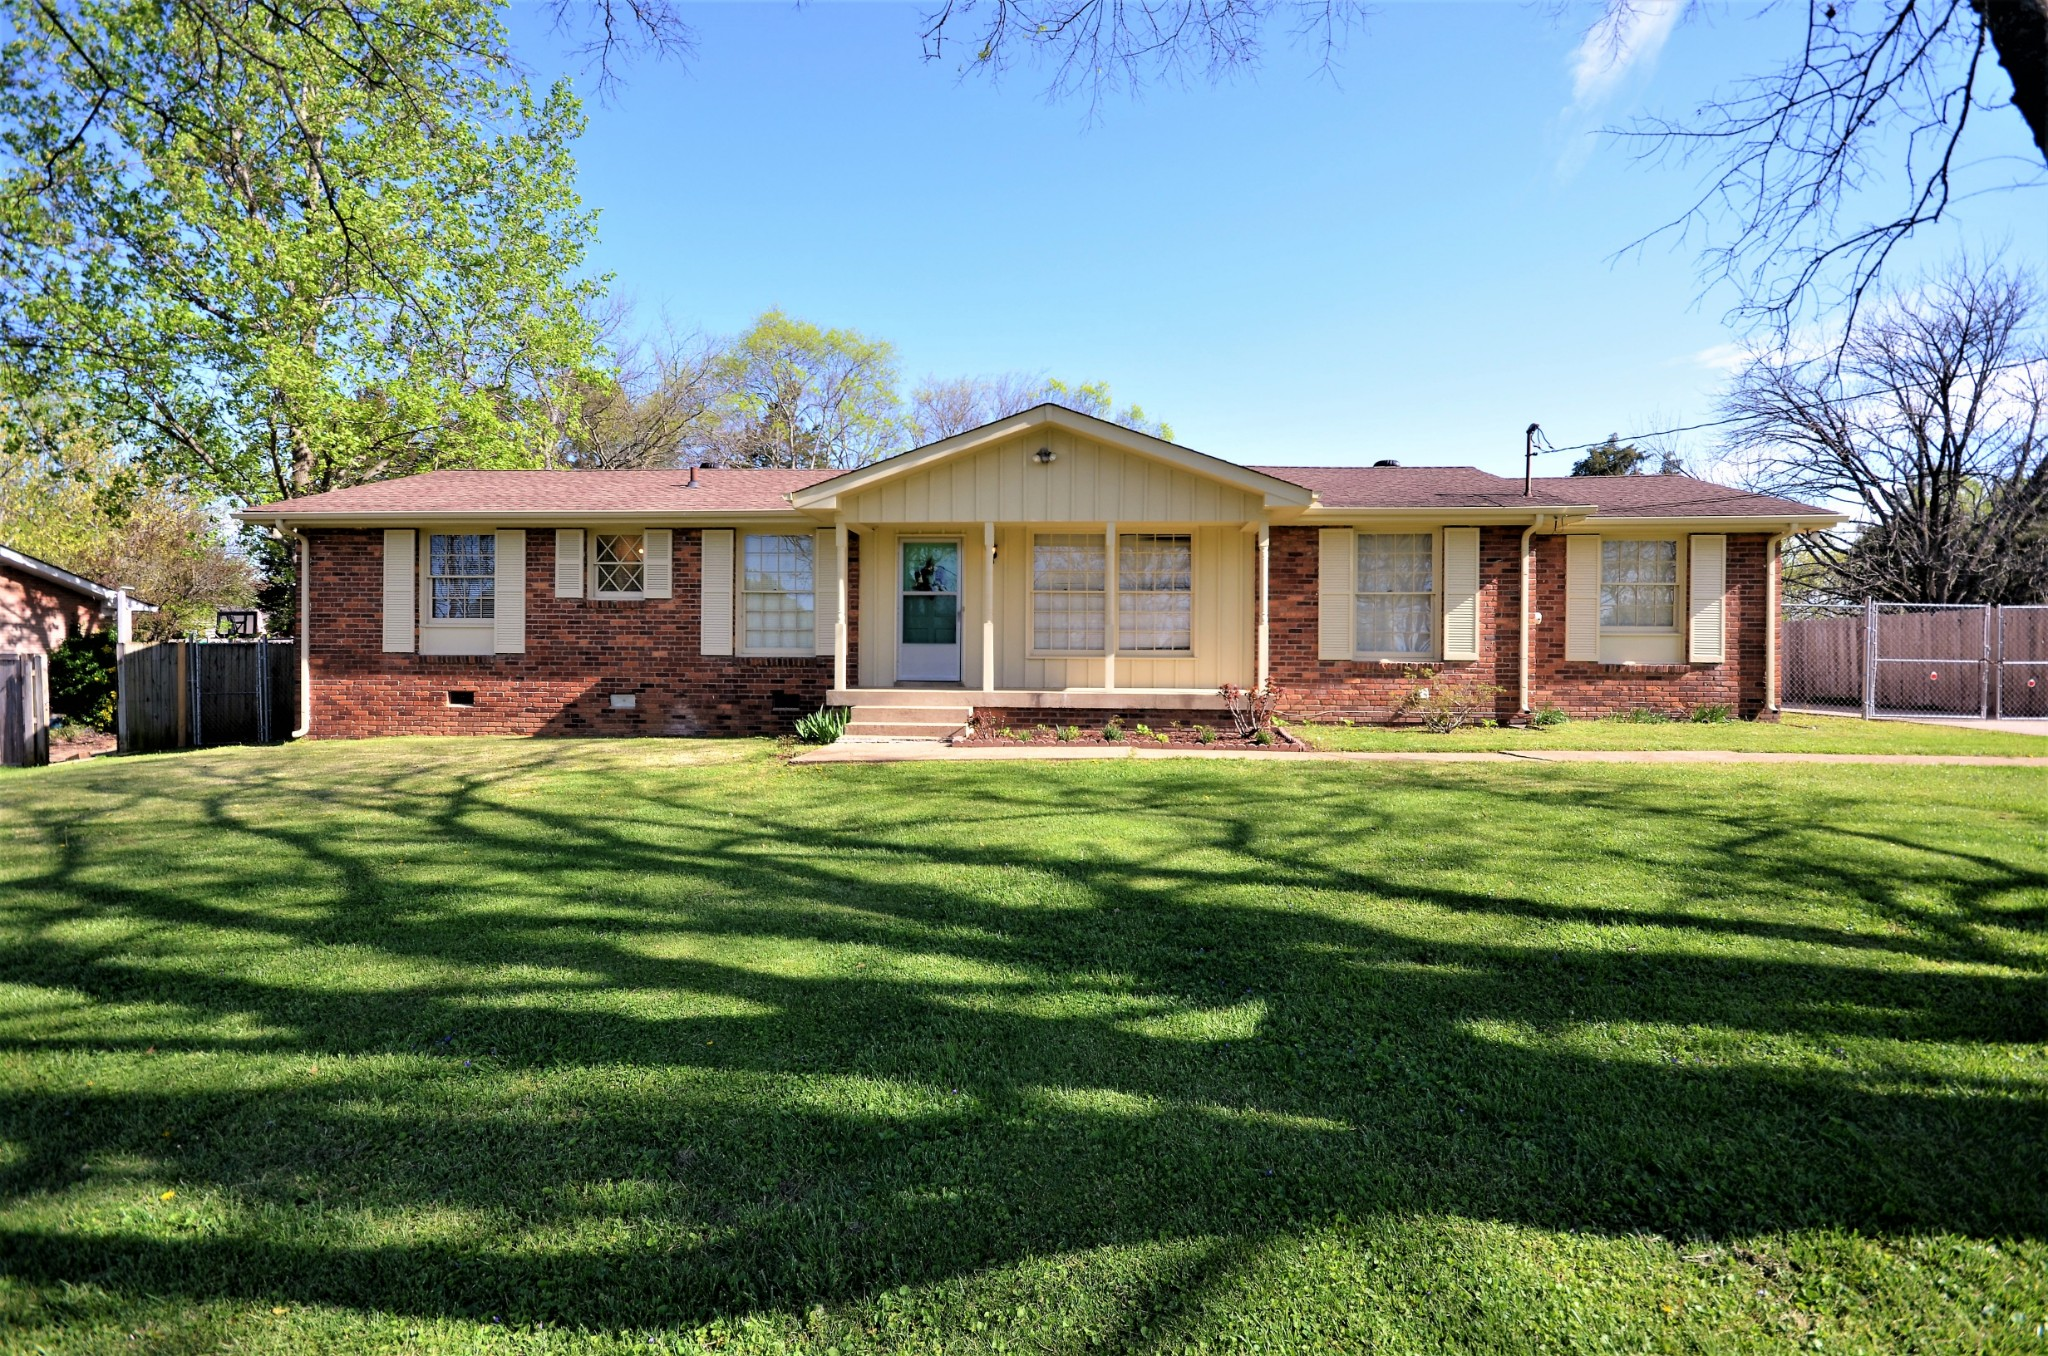 132 Savely Dr Property Photo - Hendersonville, TN real estate listing